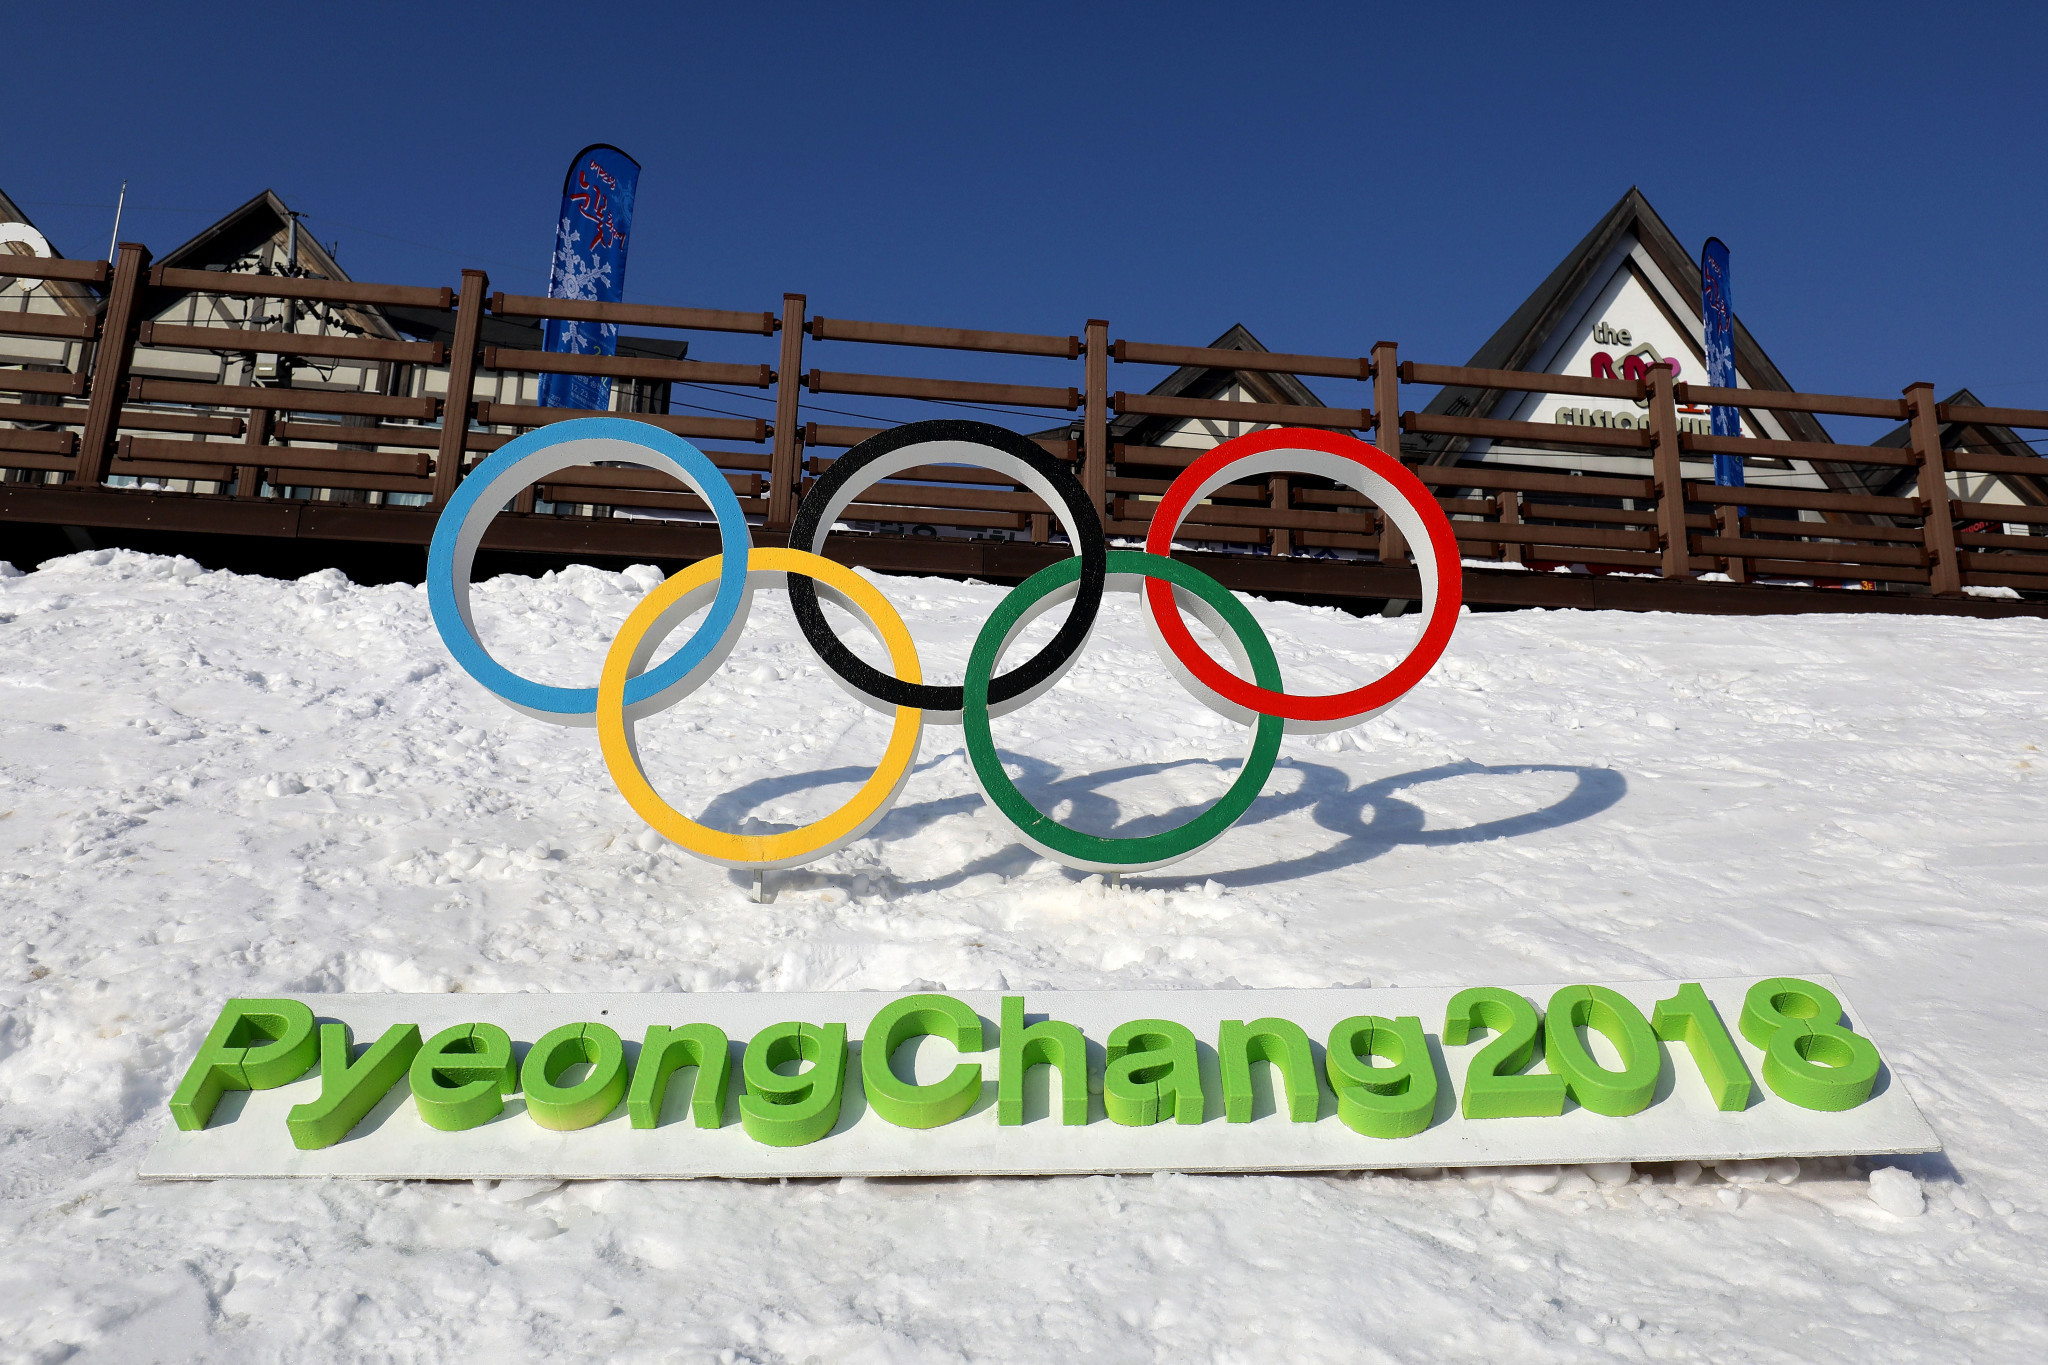 Pyeongchang 2018 preparations high on agenda at FIS Technical Committee meetings